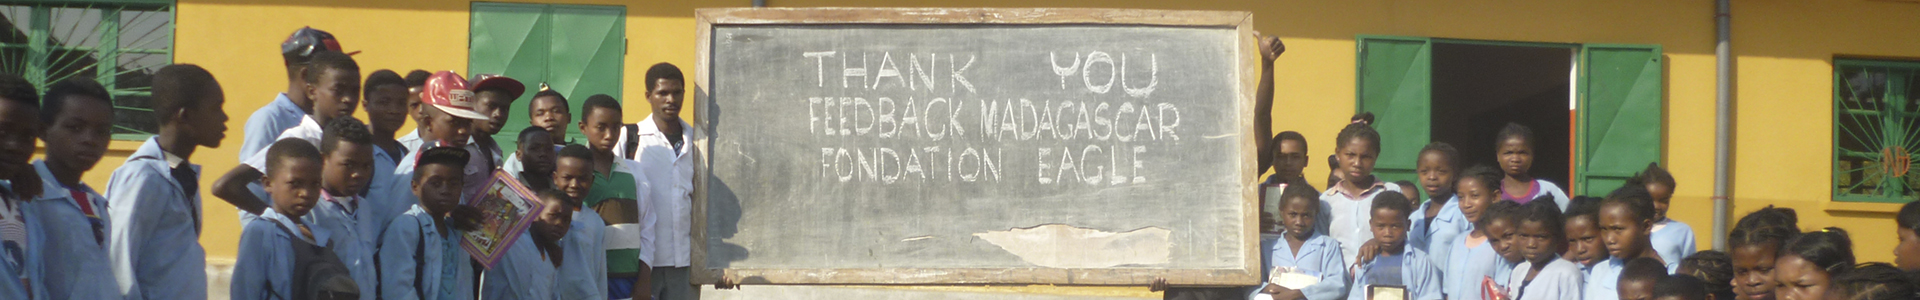 School in Madagascar with children Eagle Foundation